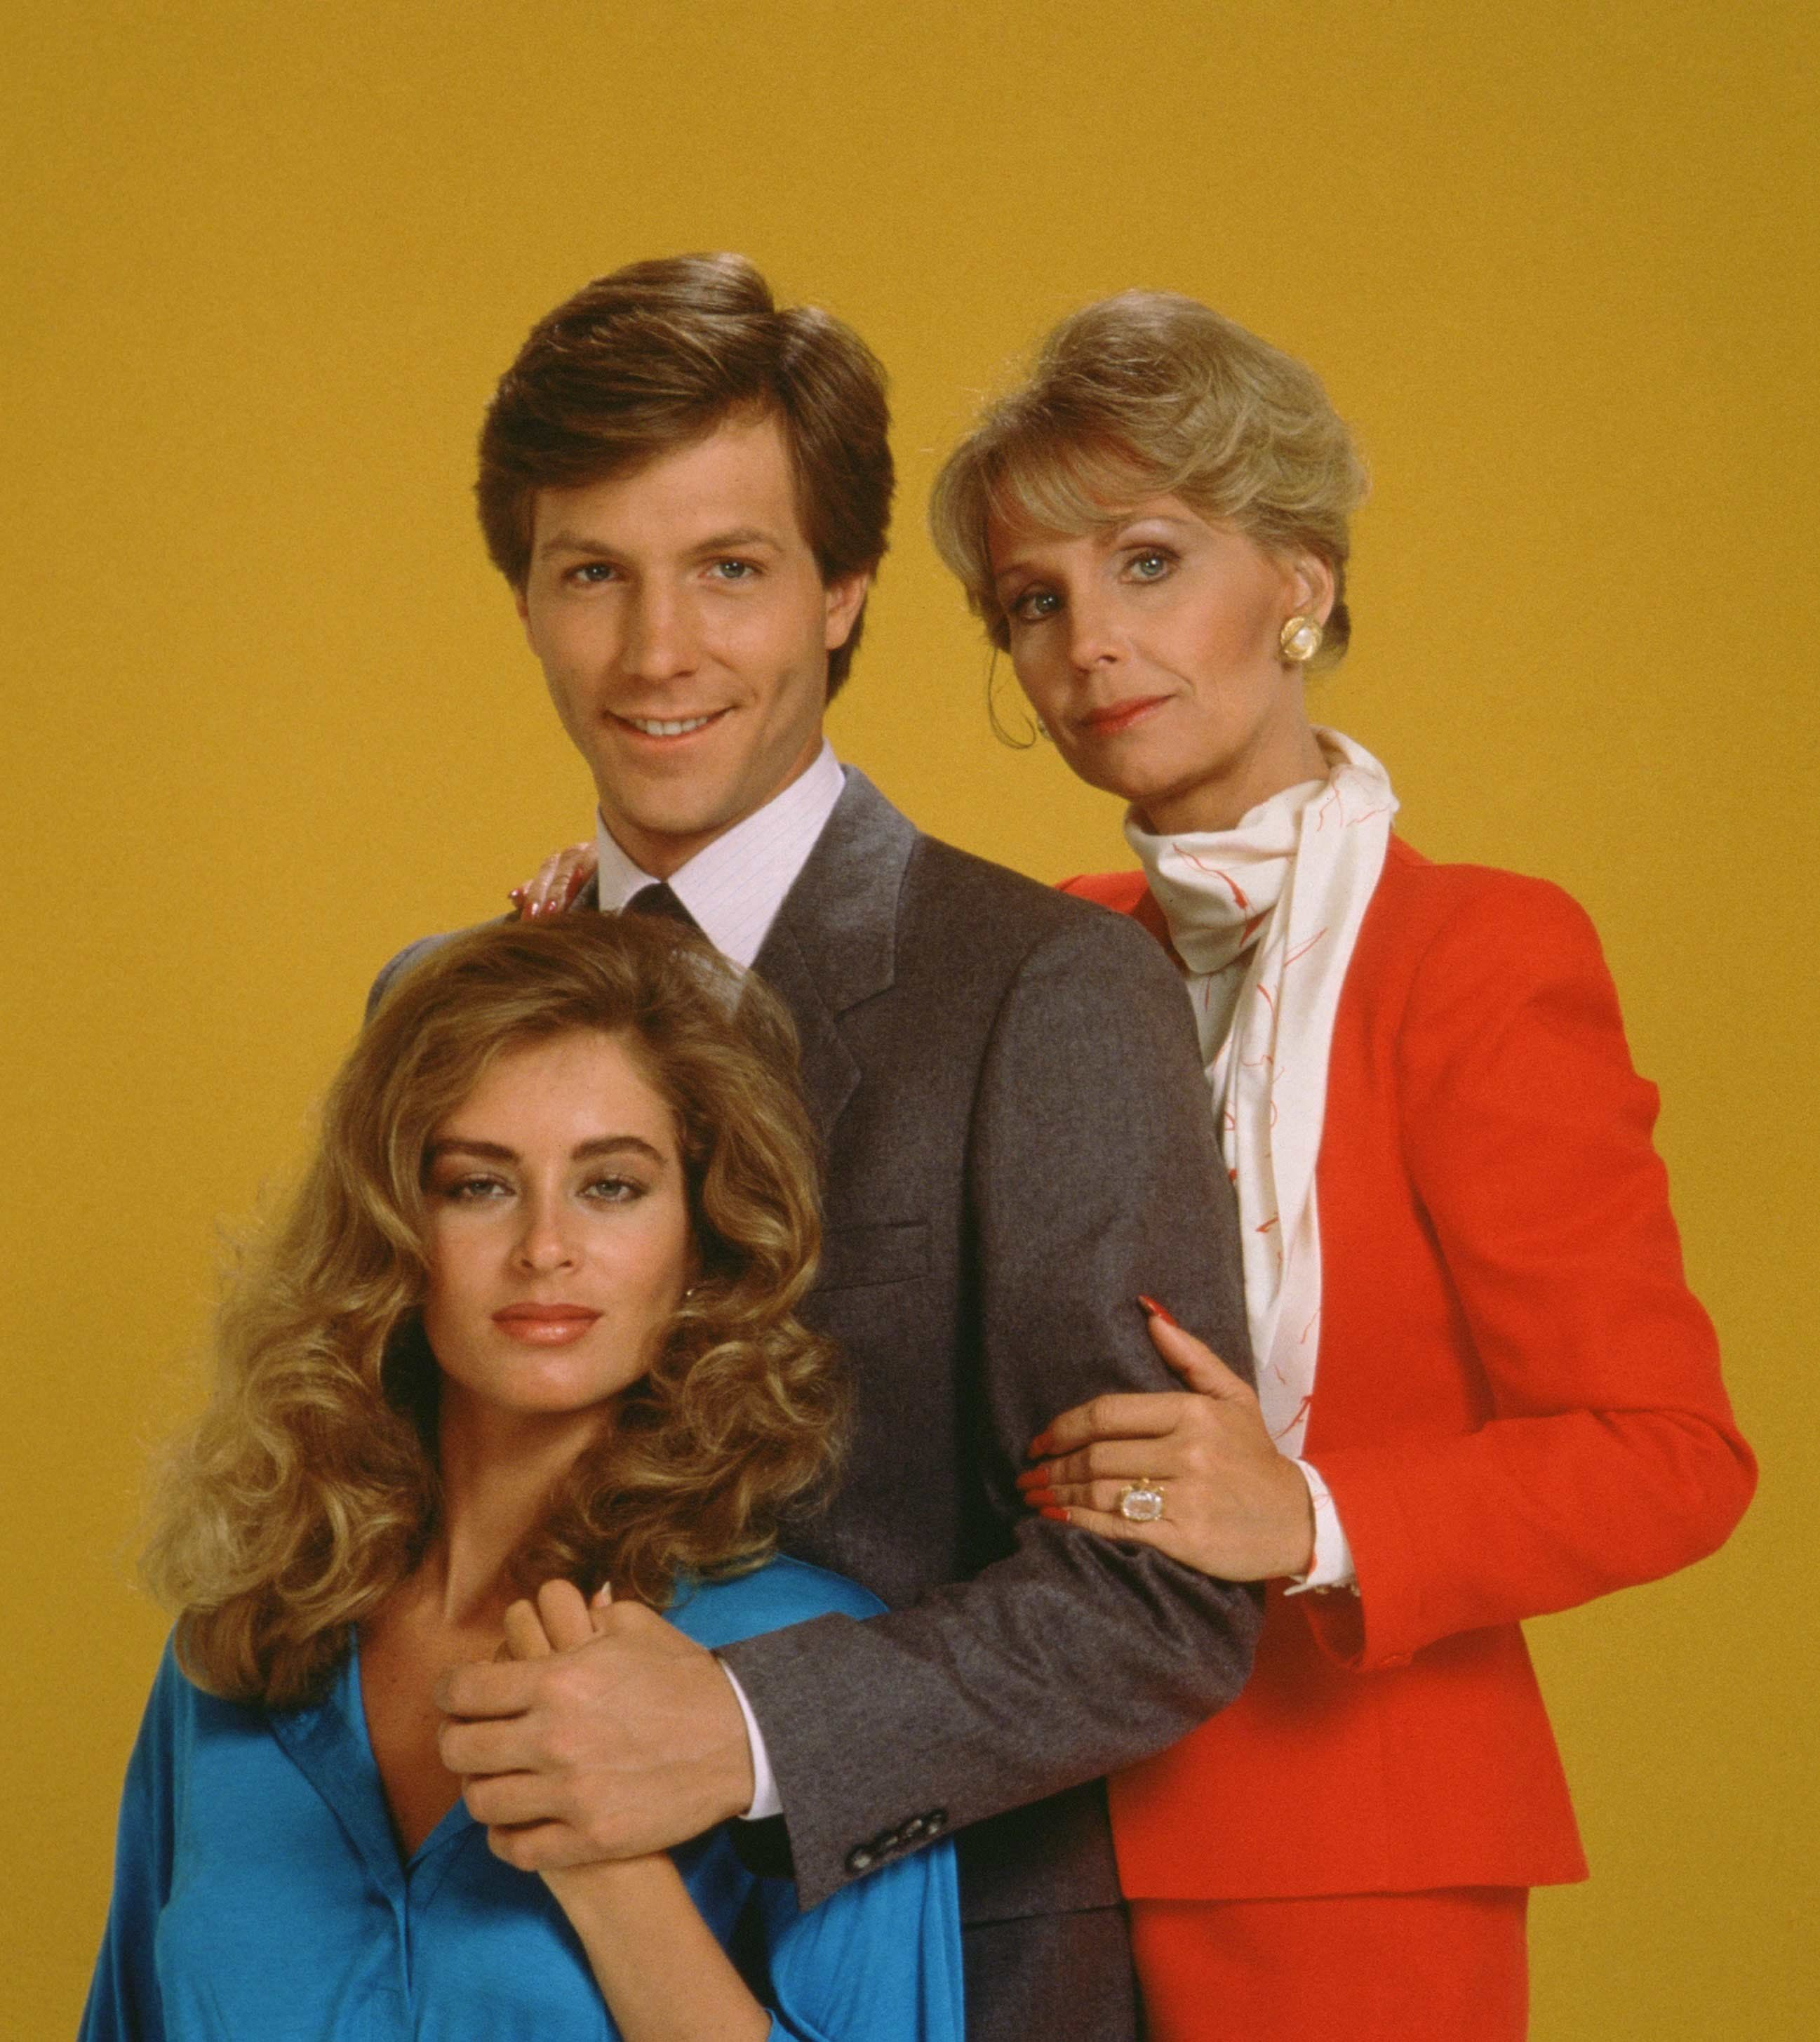 Eileen Davidson as \u200bAshley Abbott with Brian Matthews as Eric Garrison and Marla Adams as Dina Abbott